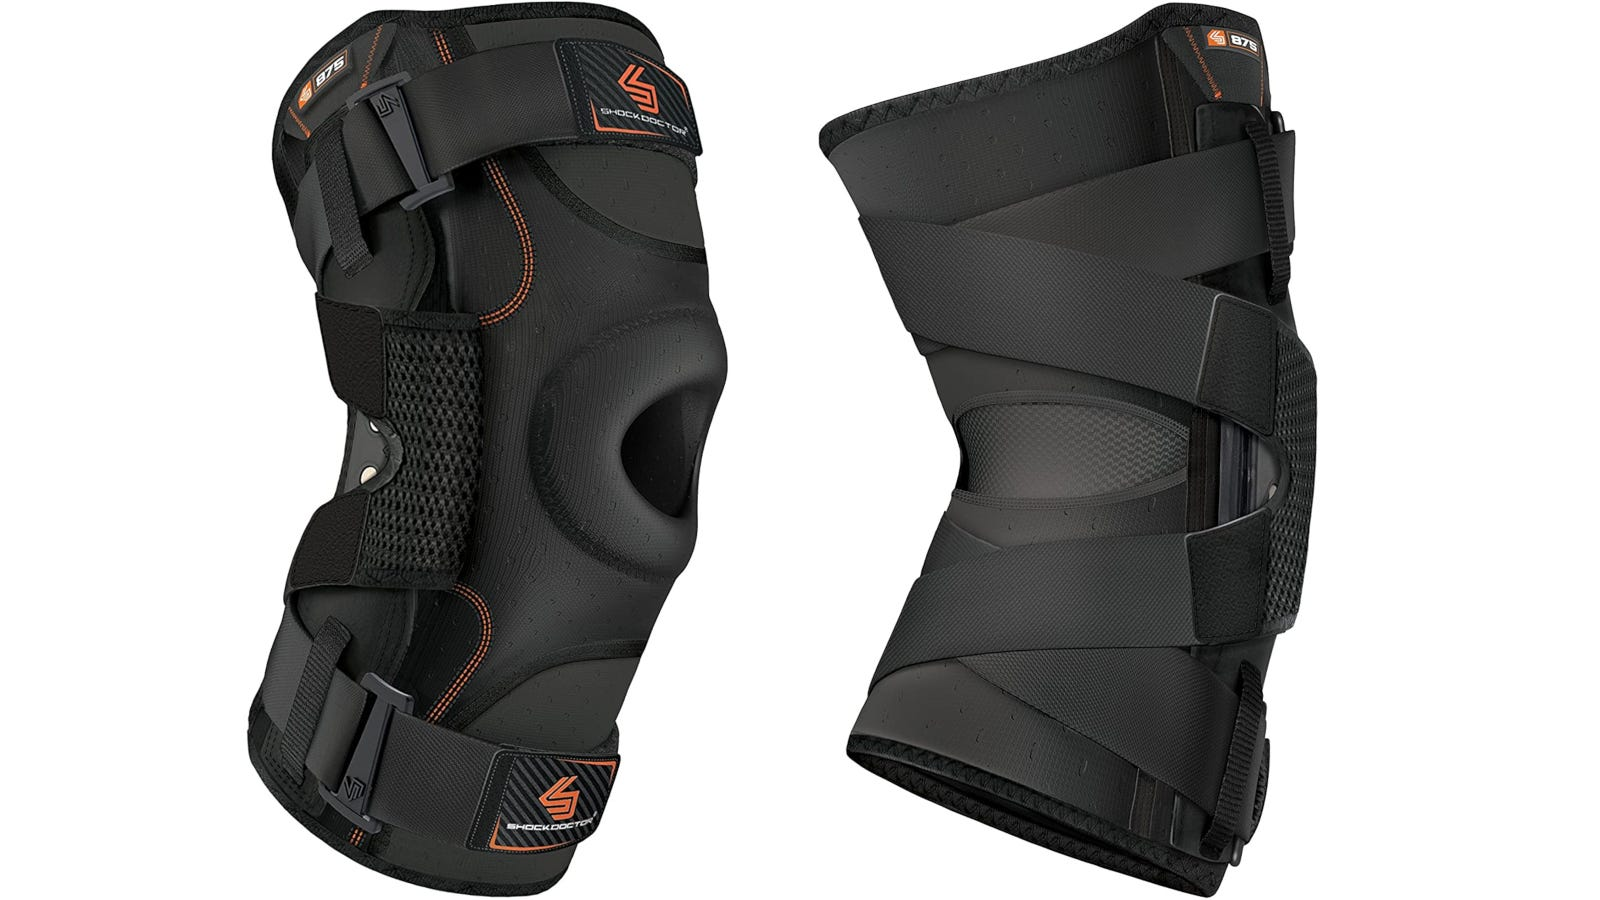 A black hinged knee brace with open patella design and two straps.